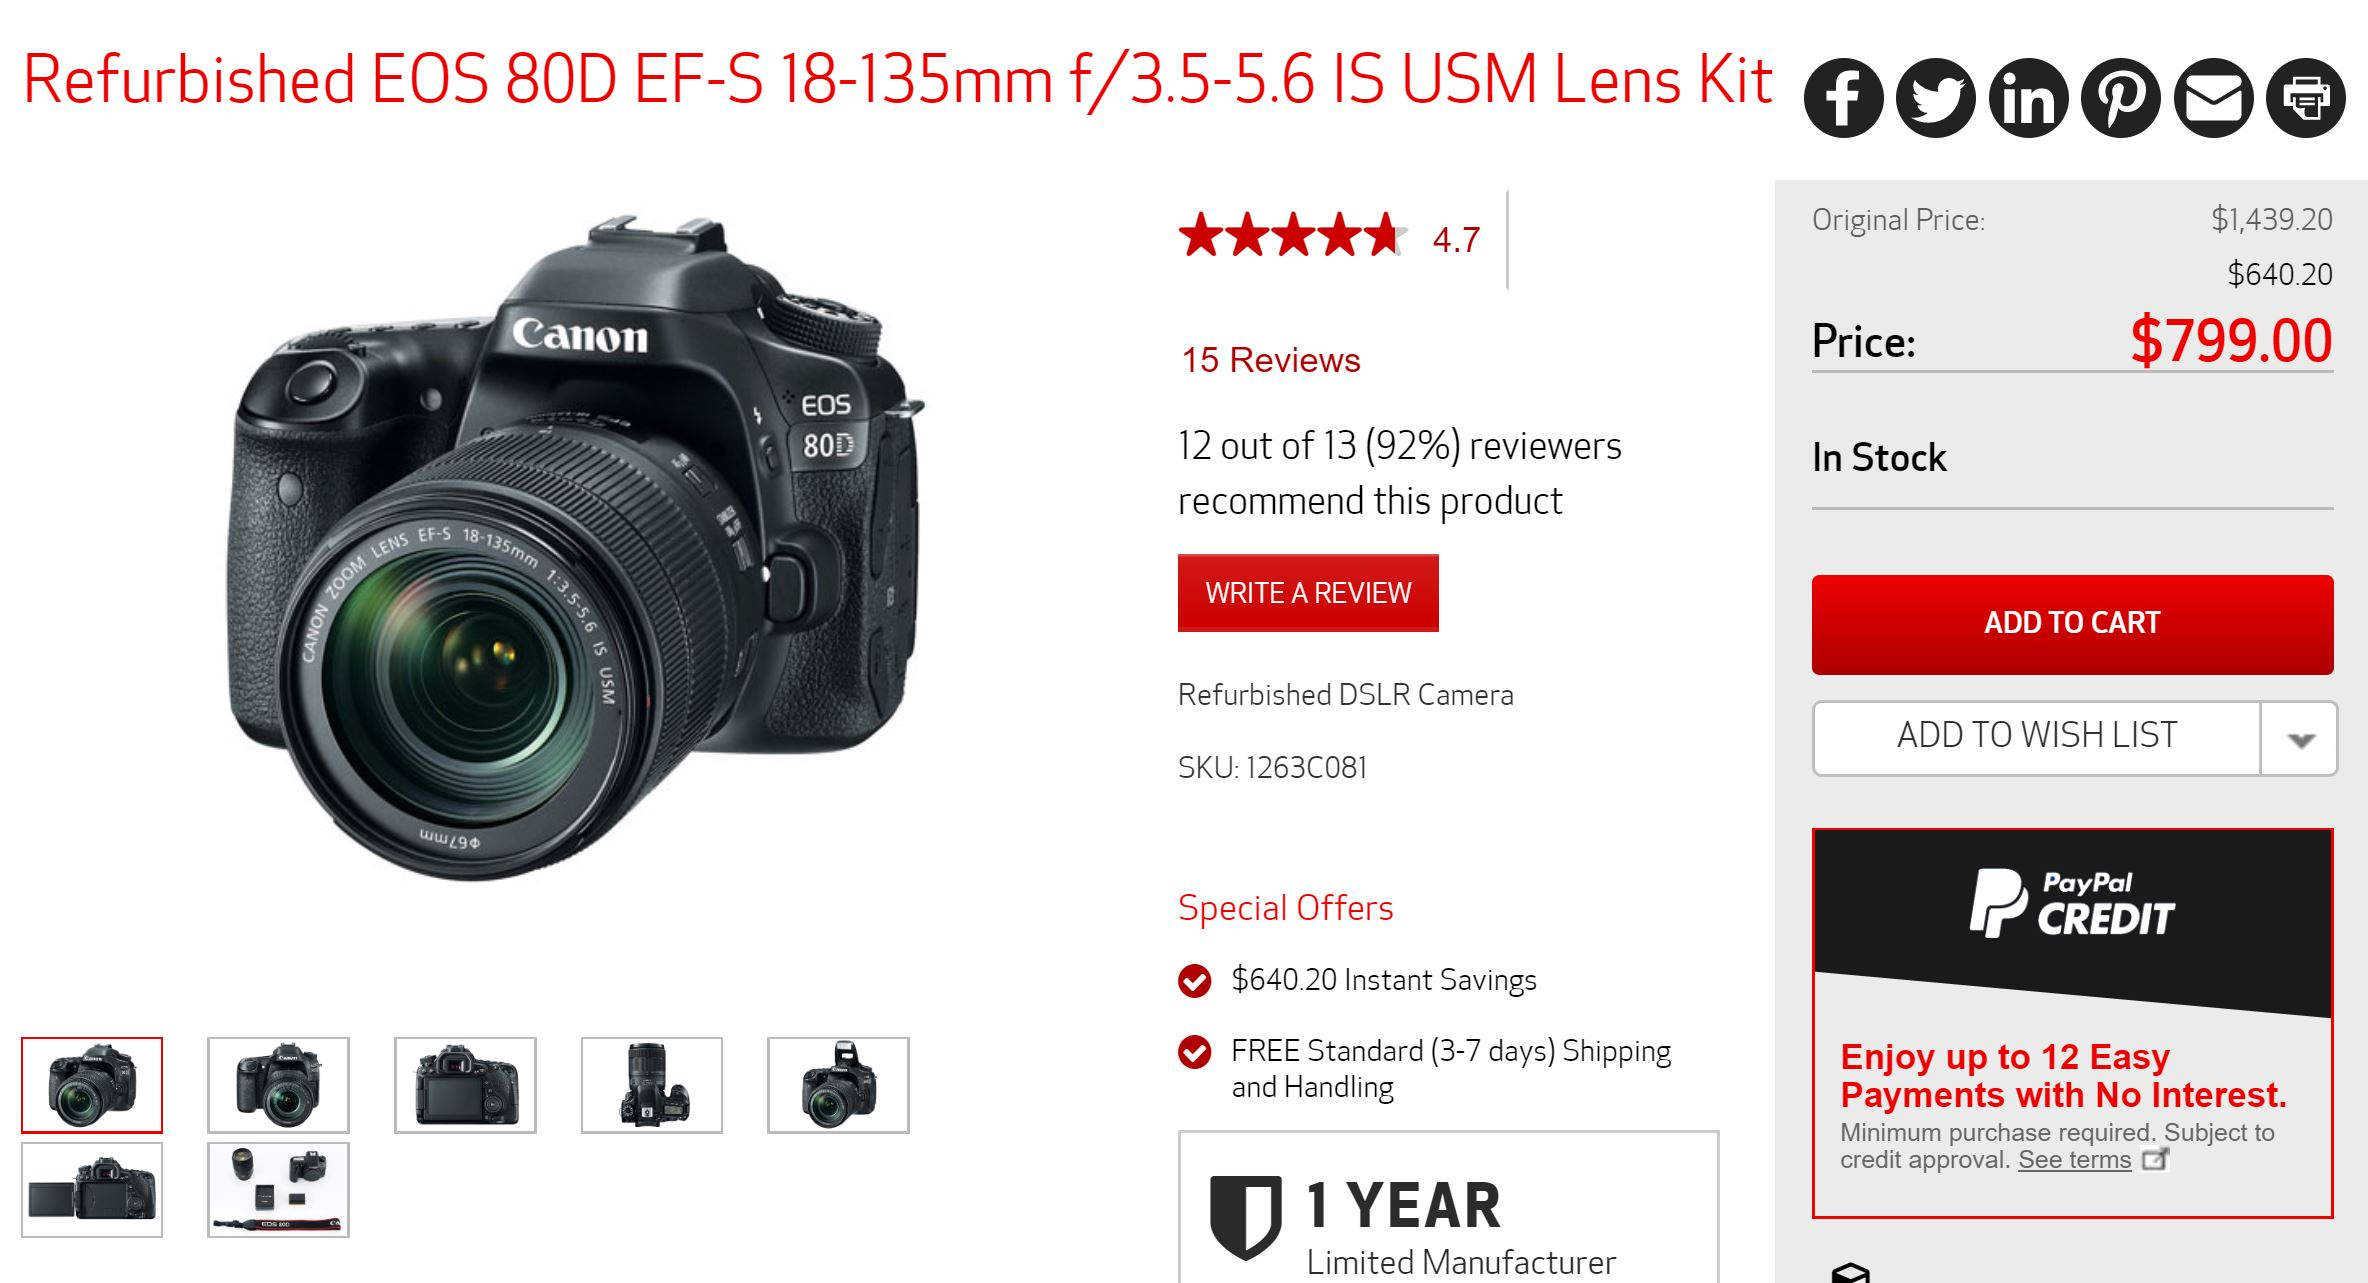 Super Hot ! Refurbished EOS 80D w/ 18-135mm Lens for $799 !